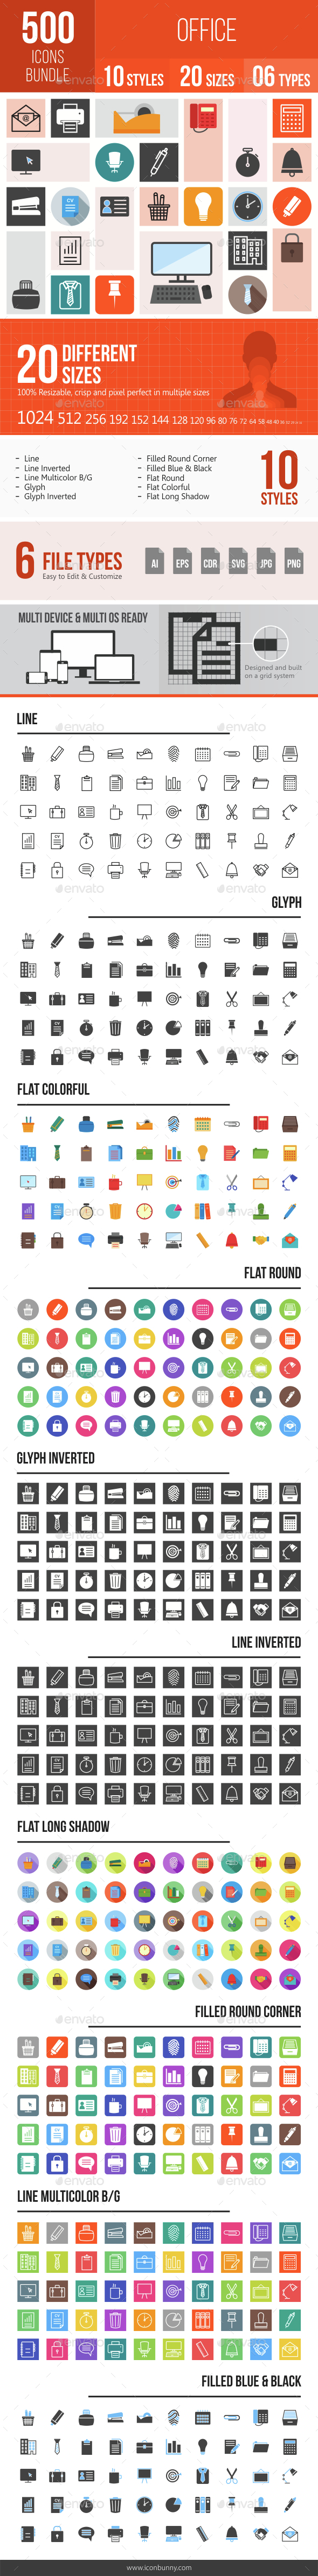 500 Office Icons Bundle - Icons